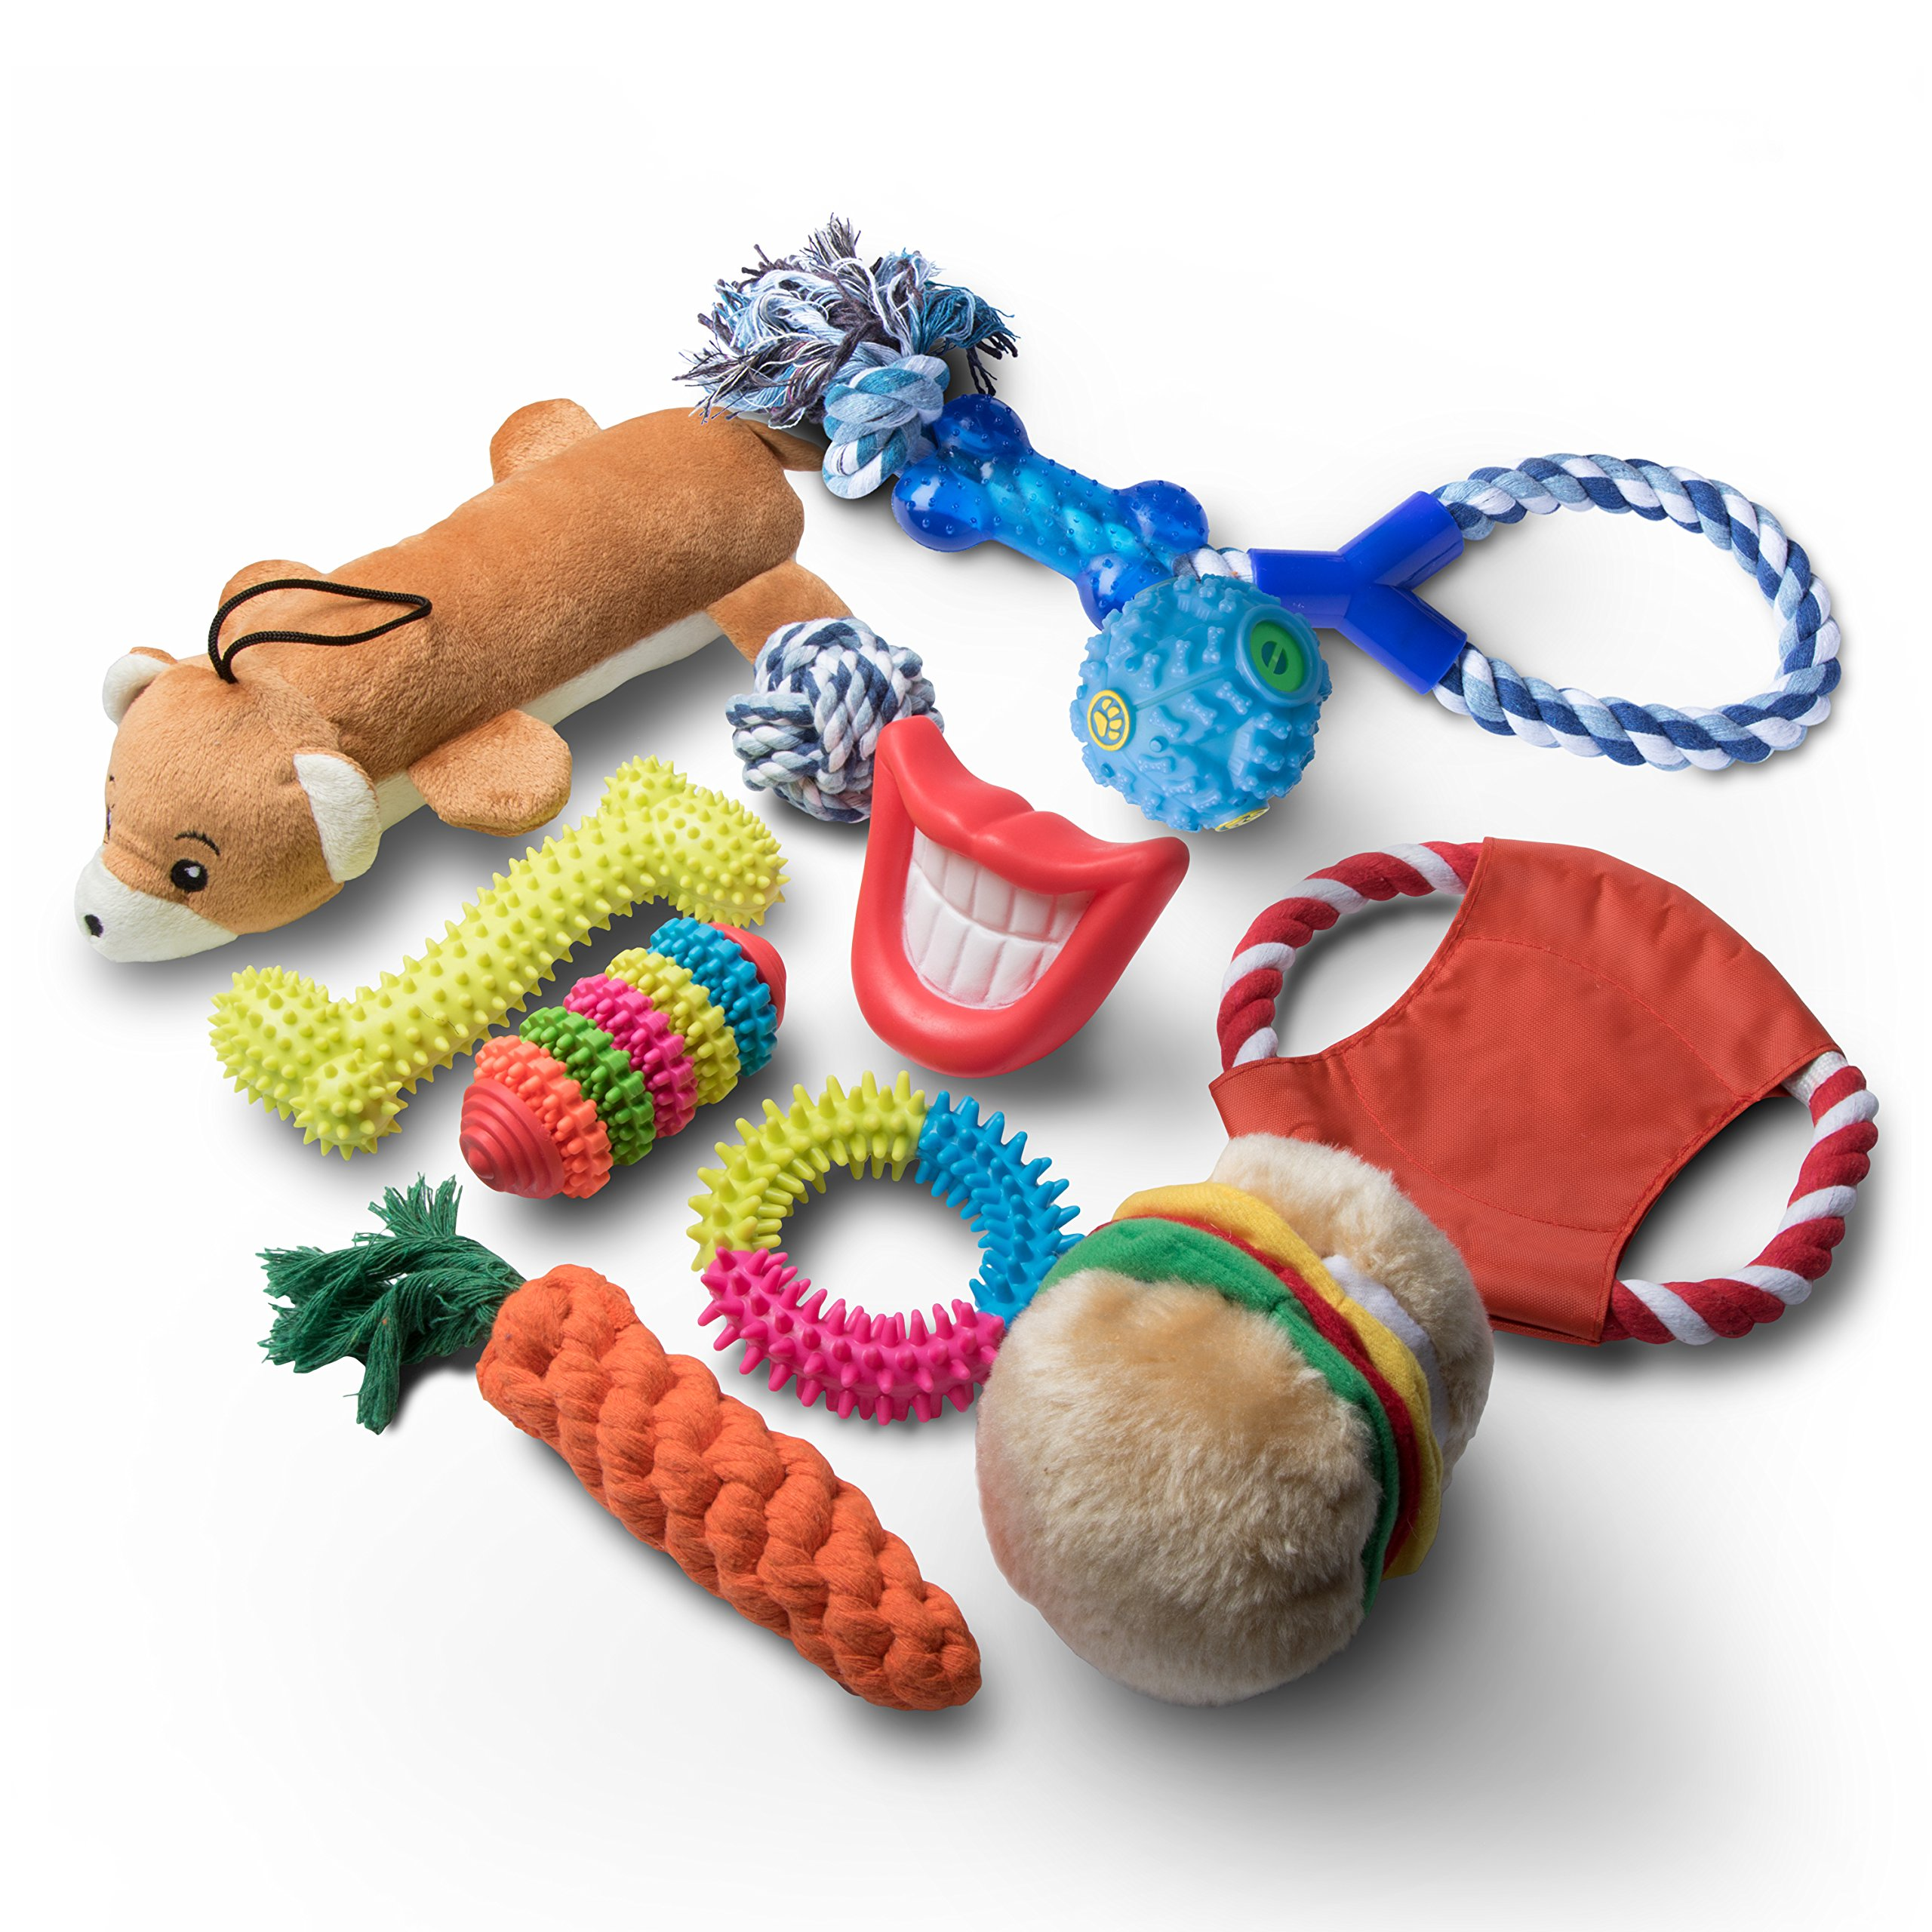 Livin' Well Dog Chew Toys - 11 Pc Value Pack Dog Toys Aggressive Chewers Dog Toys Boredom + Dog Toys Small Dogs Large Dogs